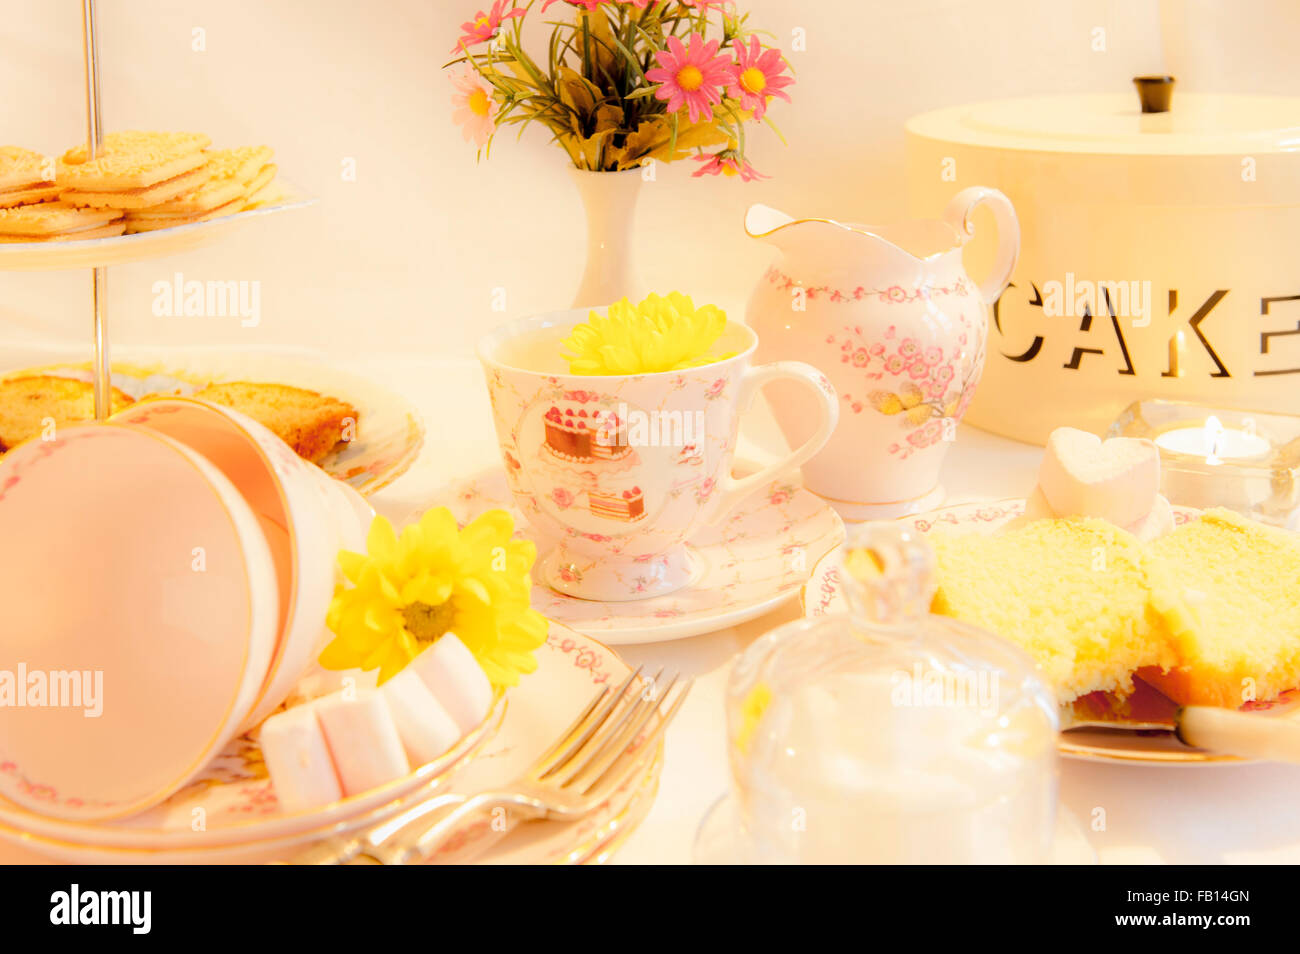 afternoon-tea-still-life-with-a-dreamy-e